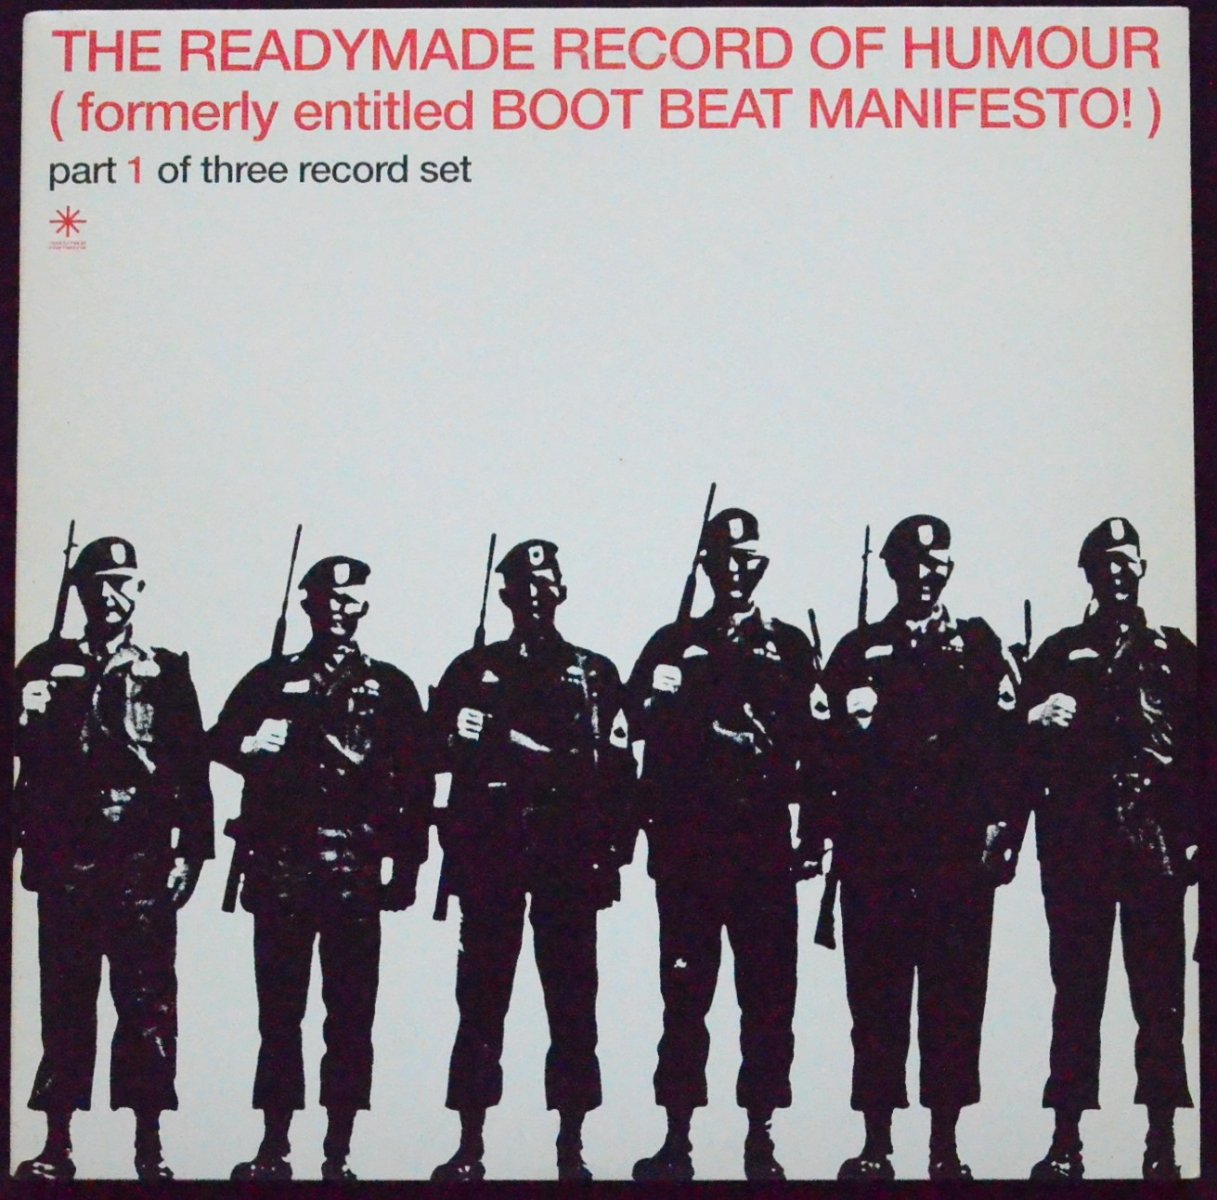 V.A. ‎/ THE READYMADE RECORD OF HUMOUR (FORMERLY ENTITLED BOOT BEAT MANIFESTO!) (3×12